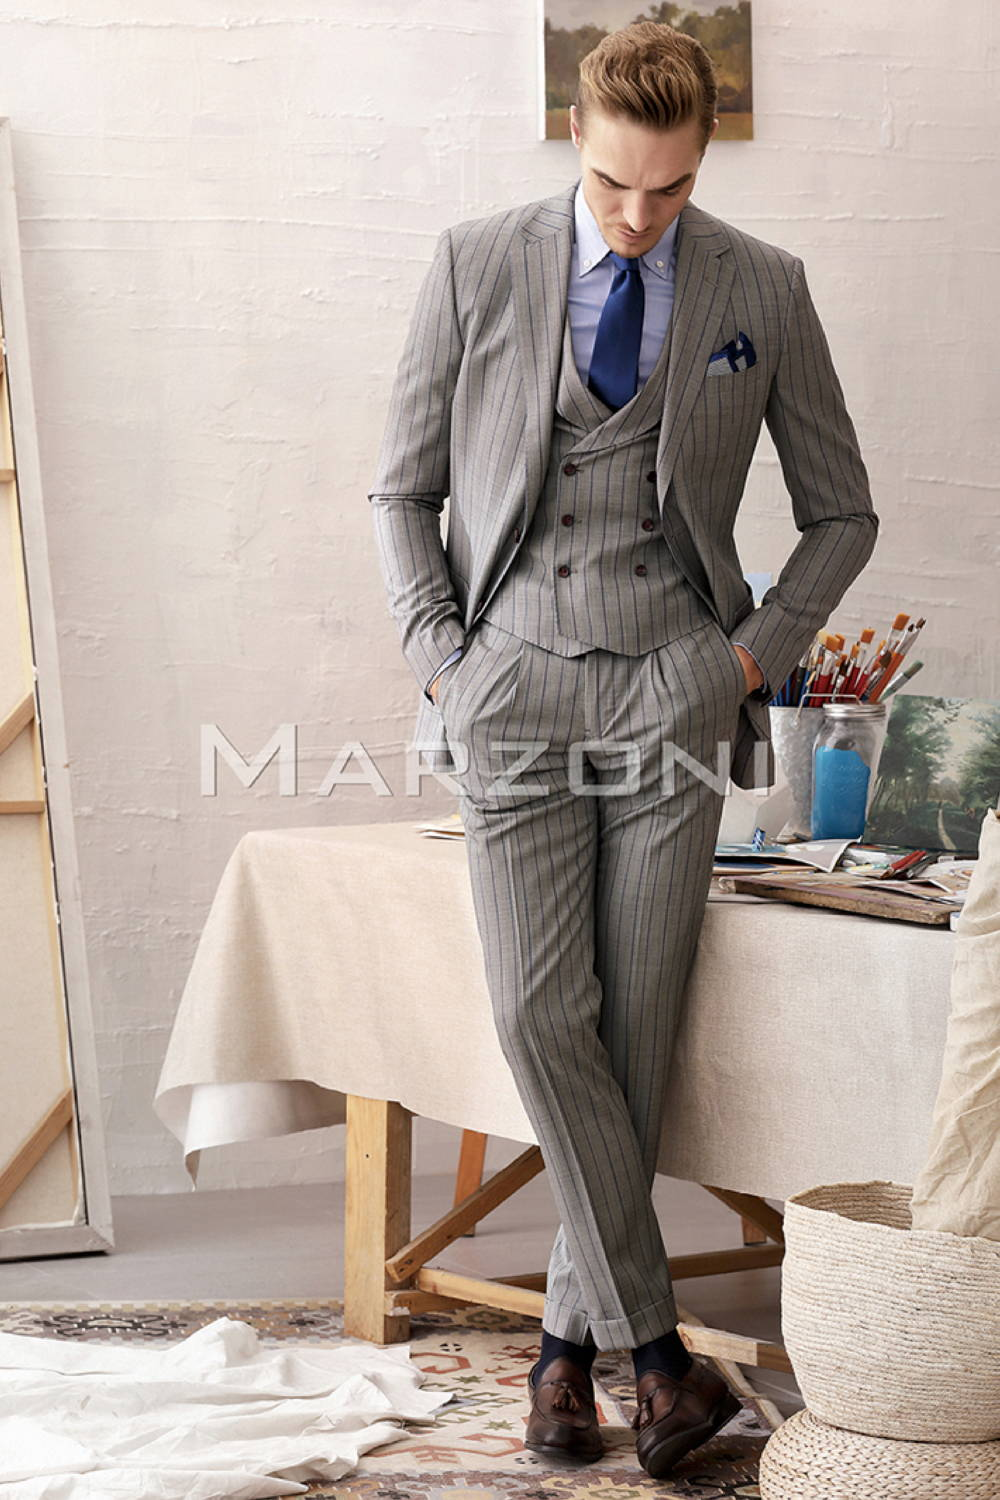 the-lancelot-hong-kong-bespoke-tailor-gallery-formal-4